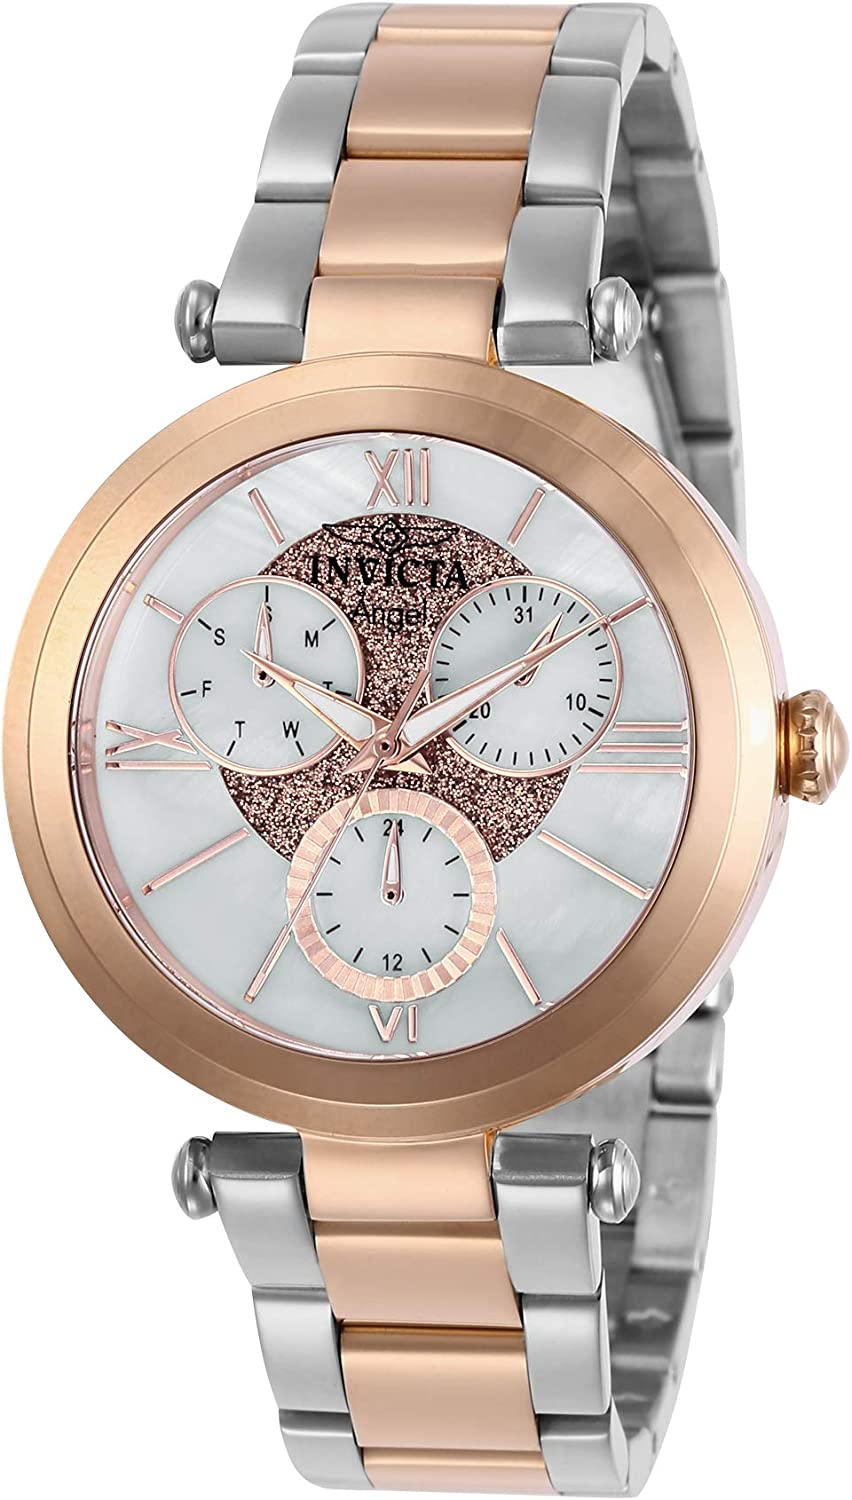 Invicta Women's Angel Quartz Watch with Stainless Steel Strap, Silver, 18 (Model: 28932)